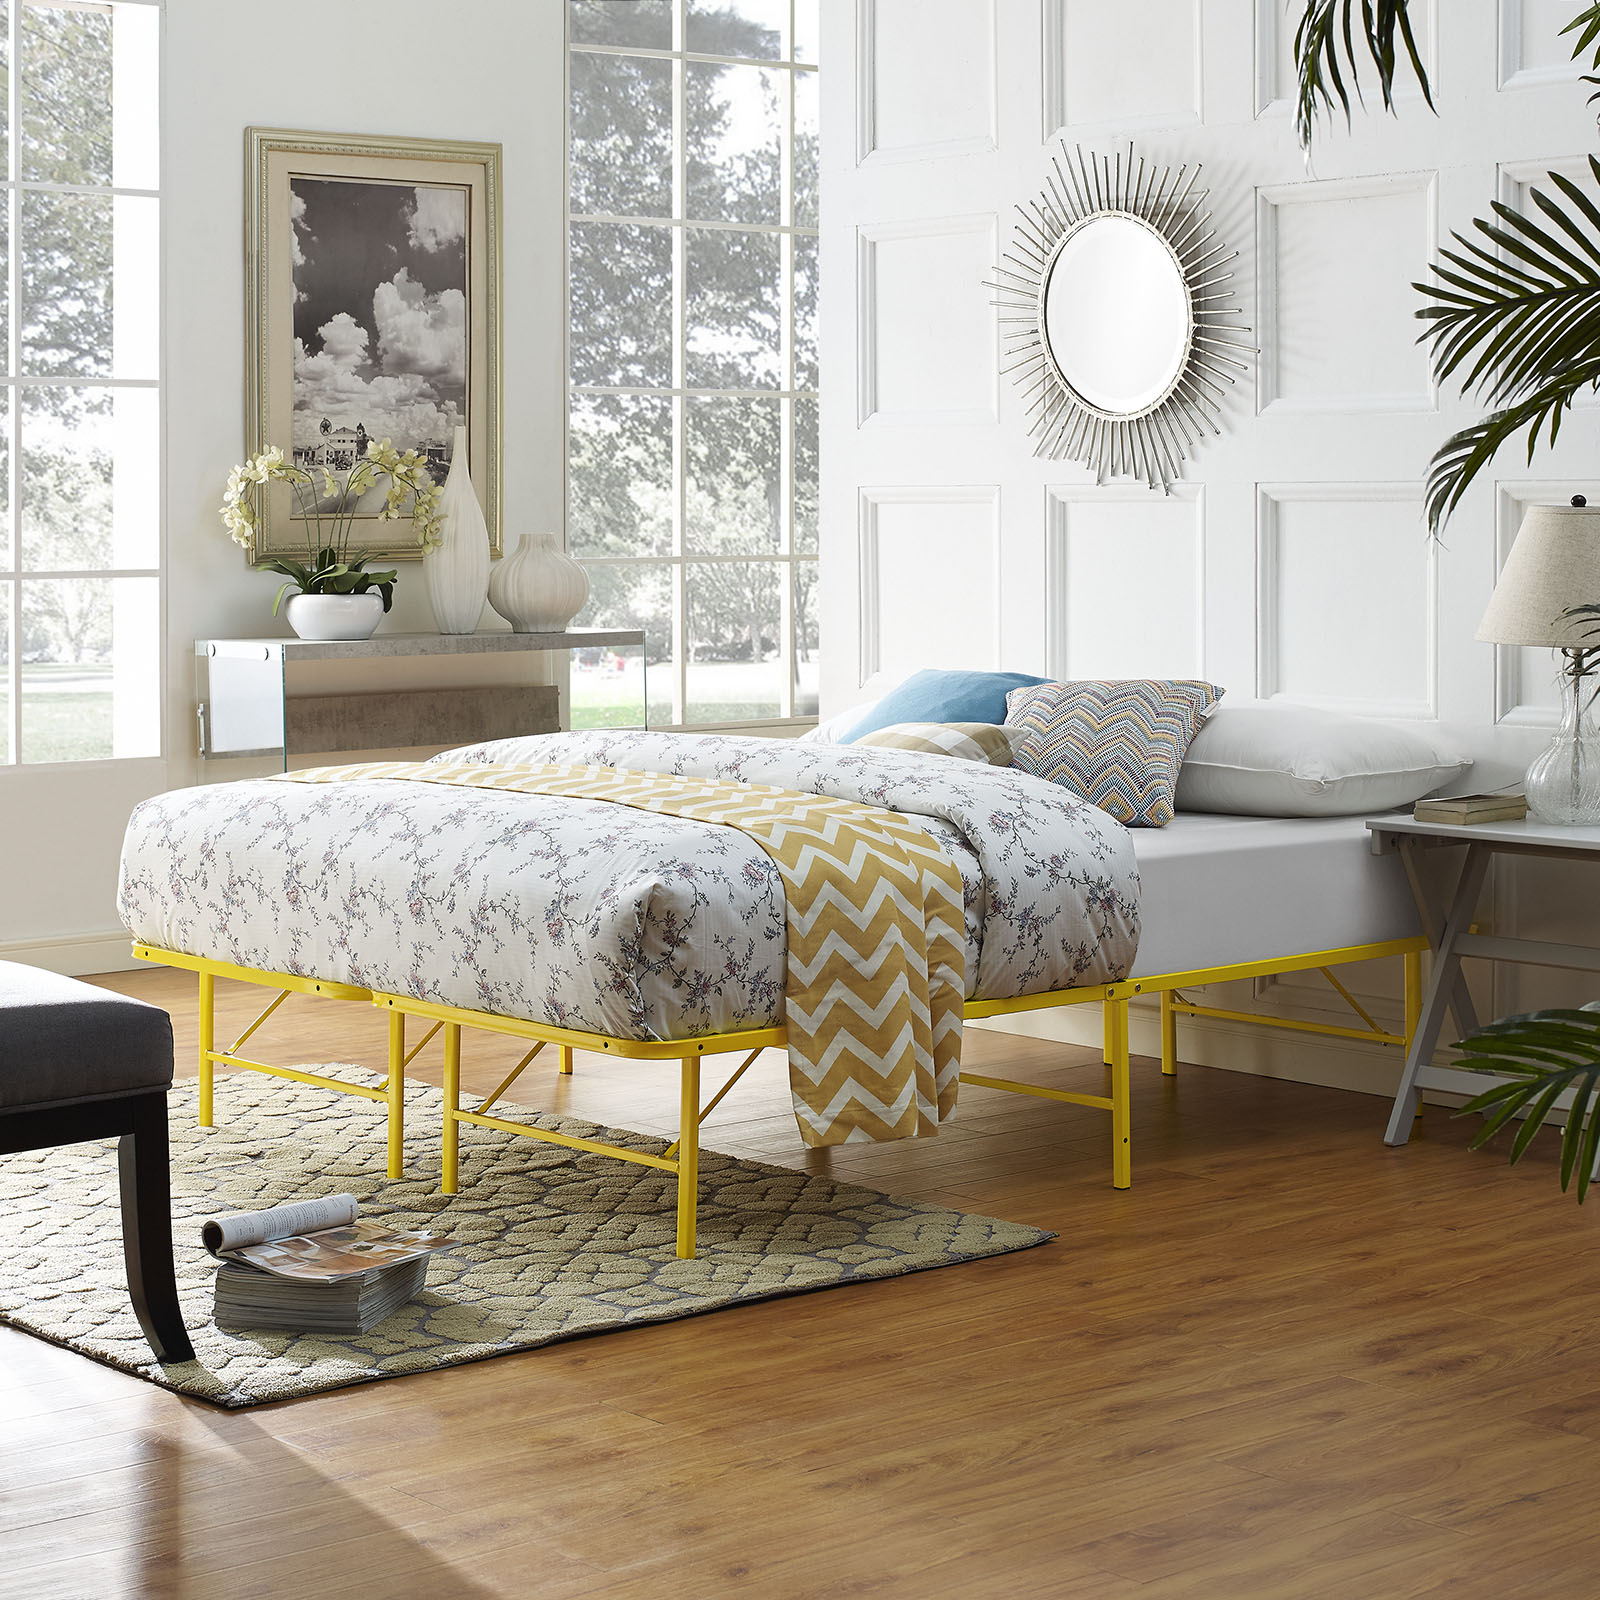 Modern Contemporary Urban Design Bedroom Queen Size Platform Bed Frame, Yellow, Metal Steel by Modà